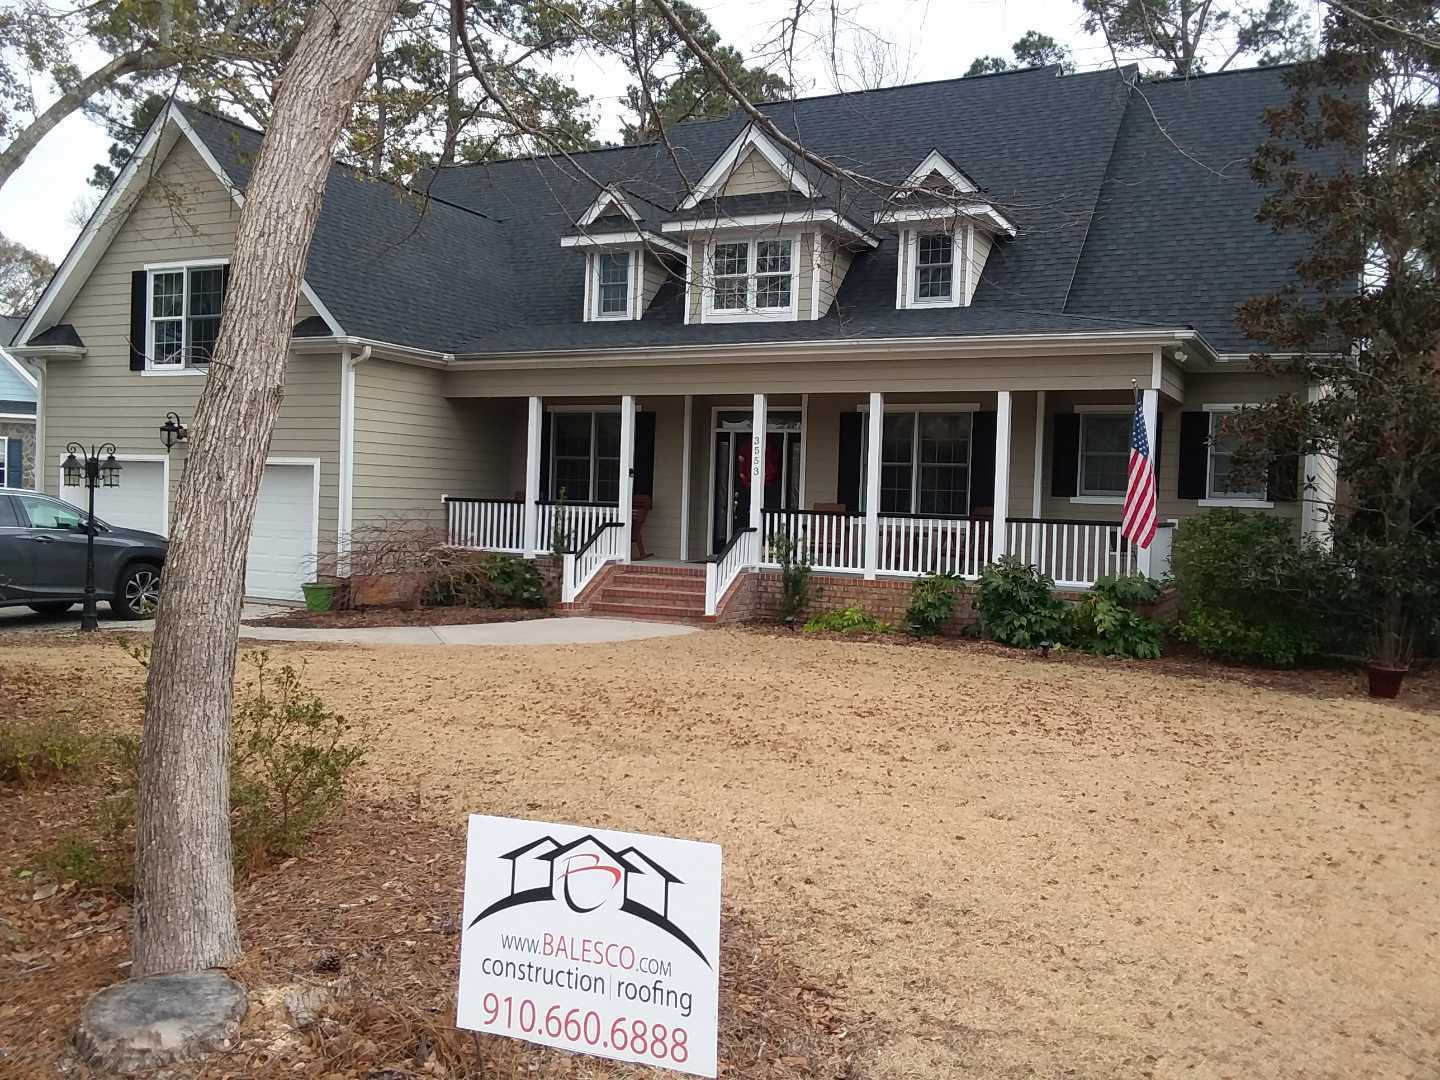 Bales Roofing Shingle Project Wilmington NC